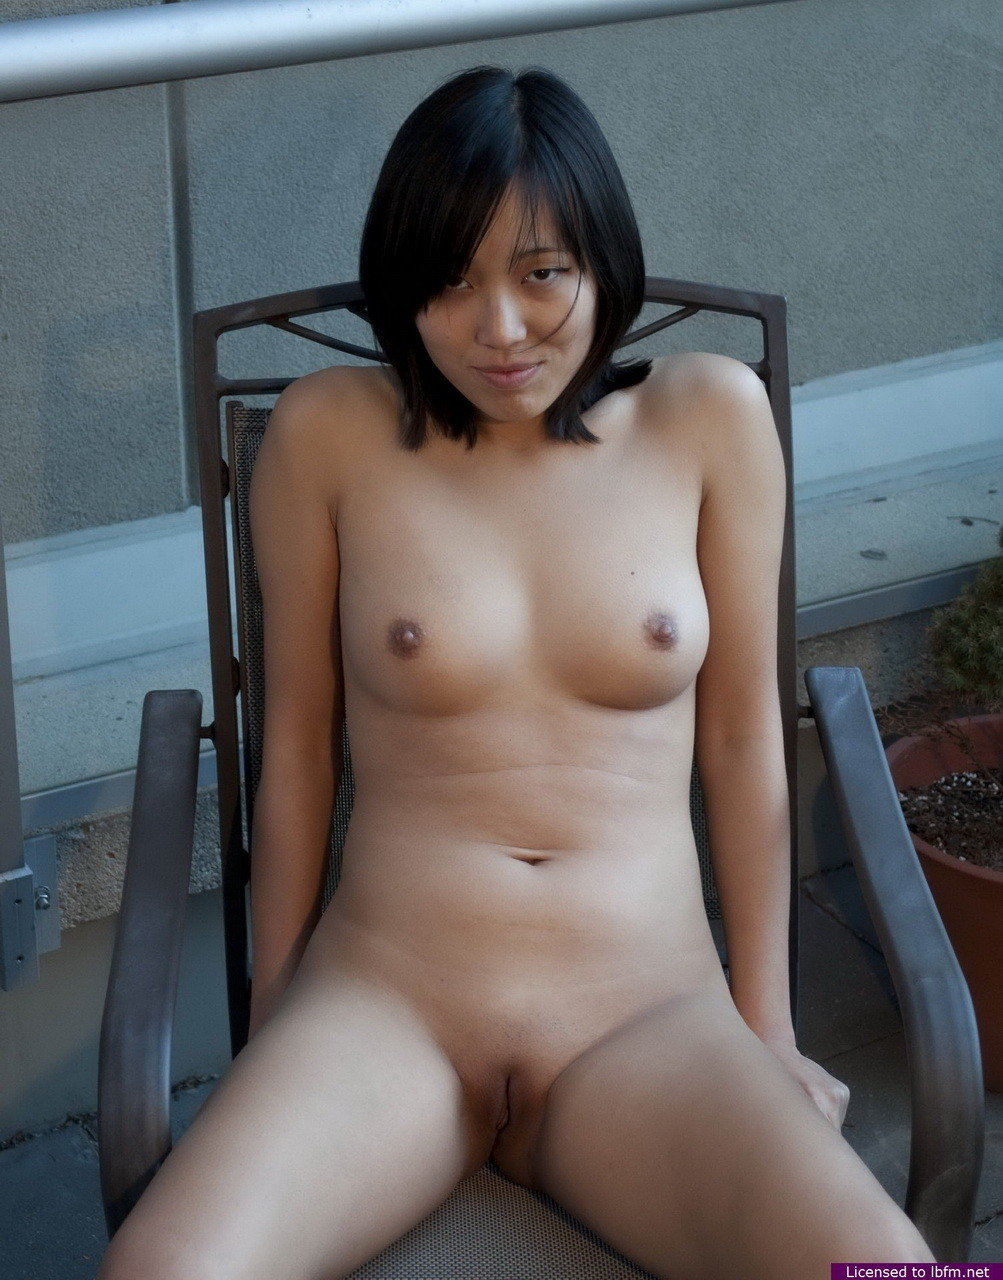 Juvenile Japanese is showing off her attractive body outdoors